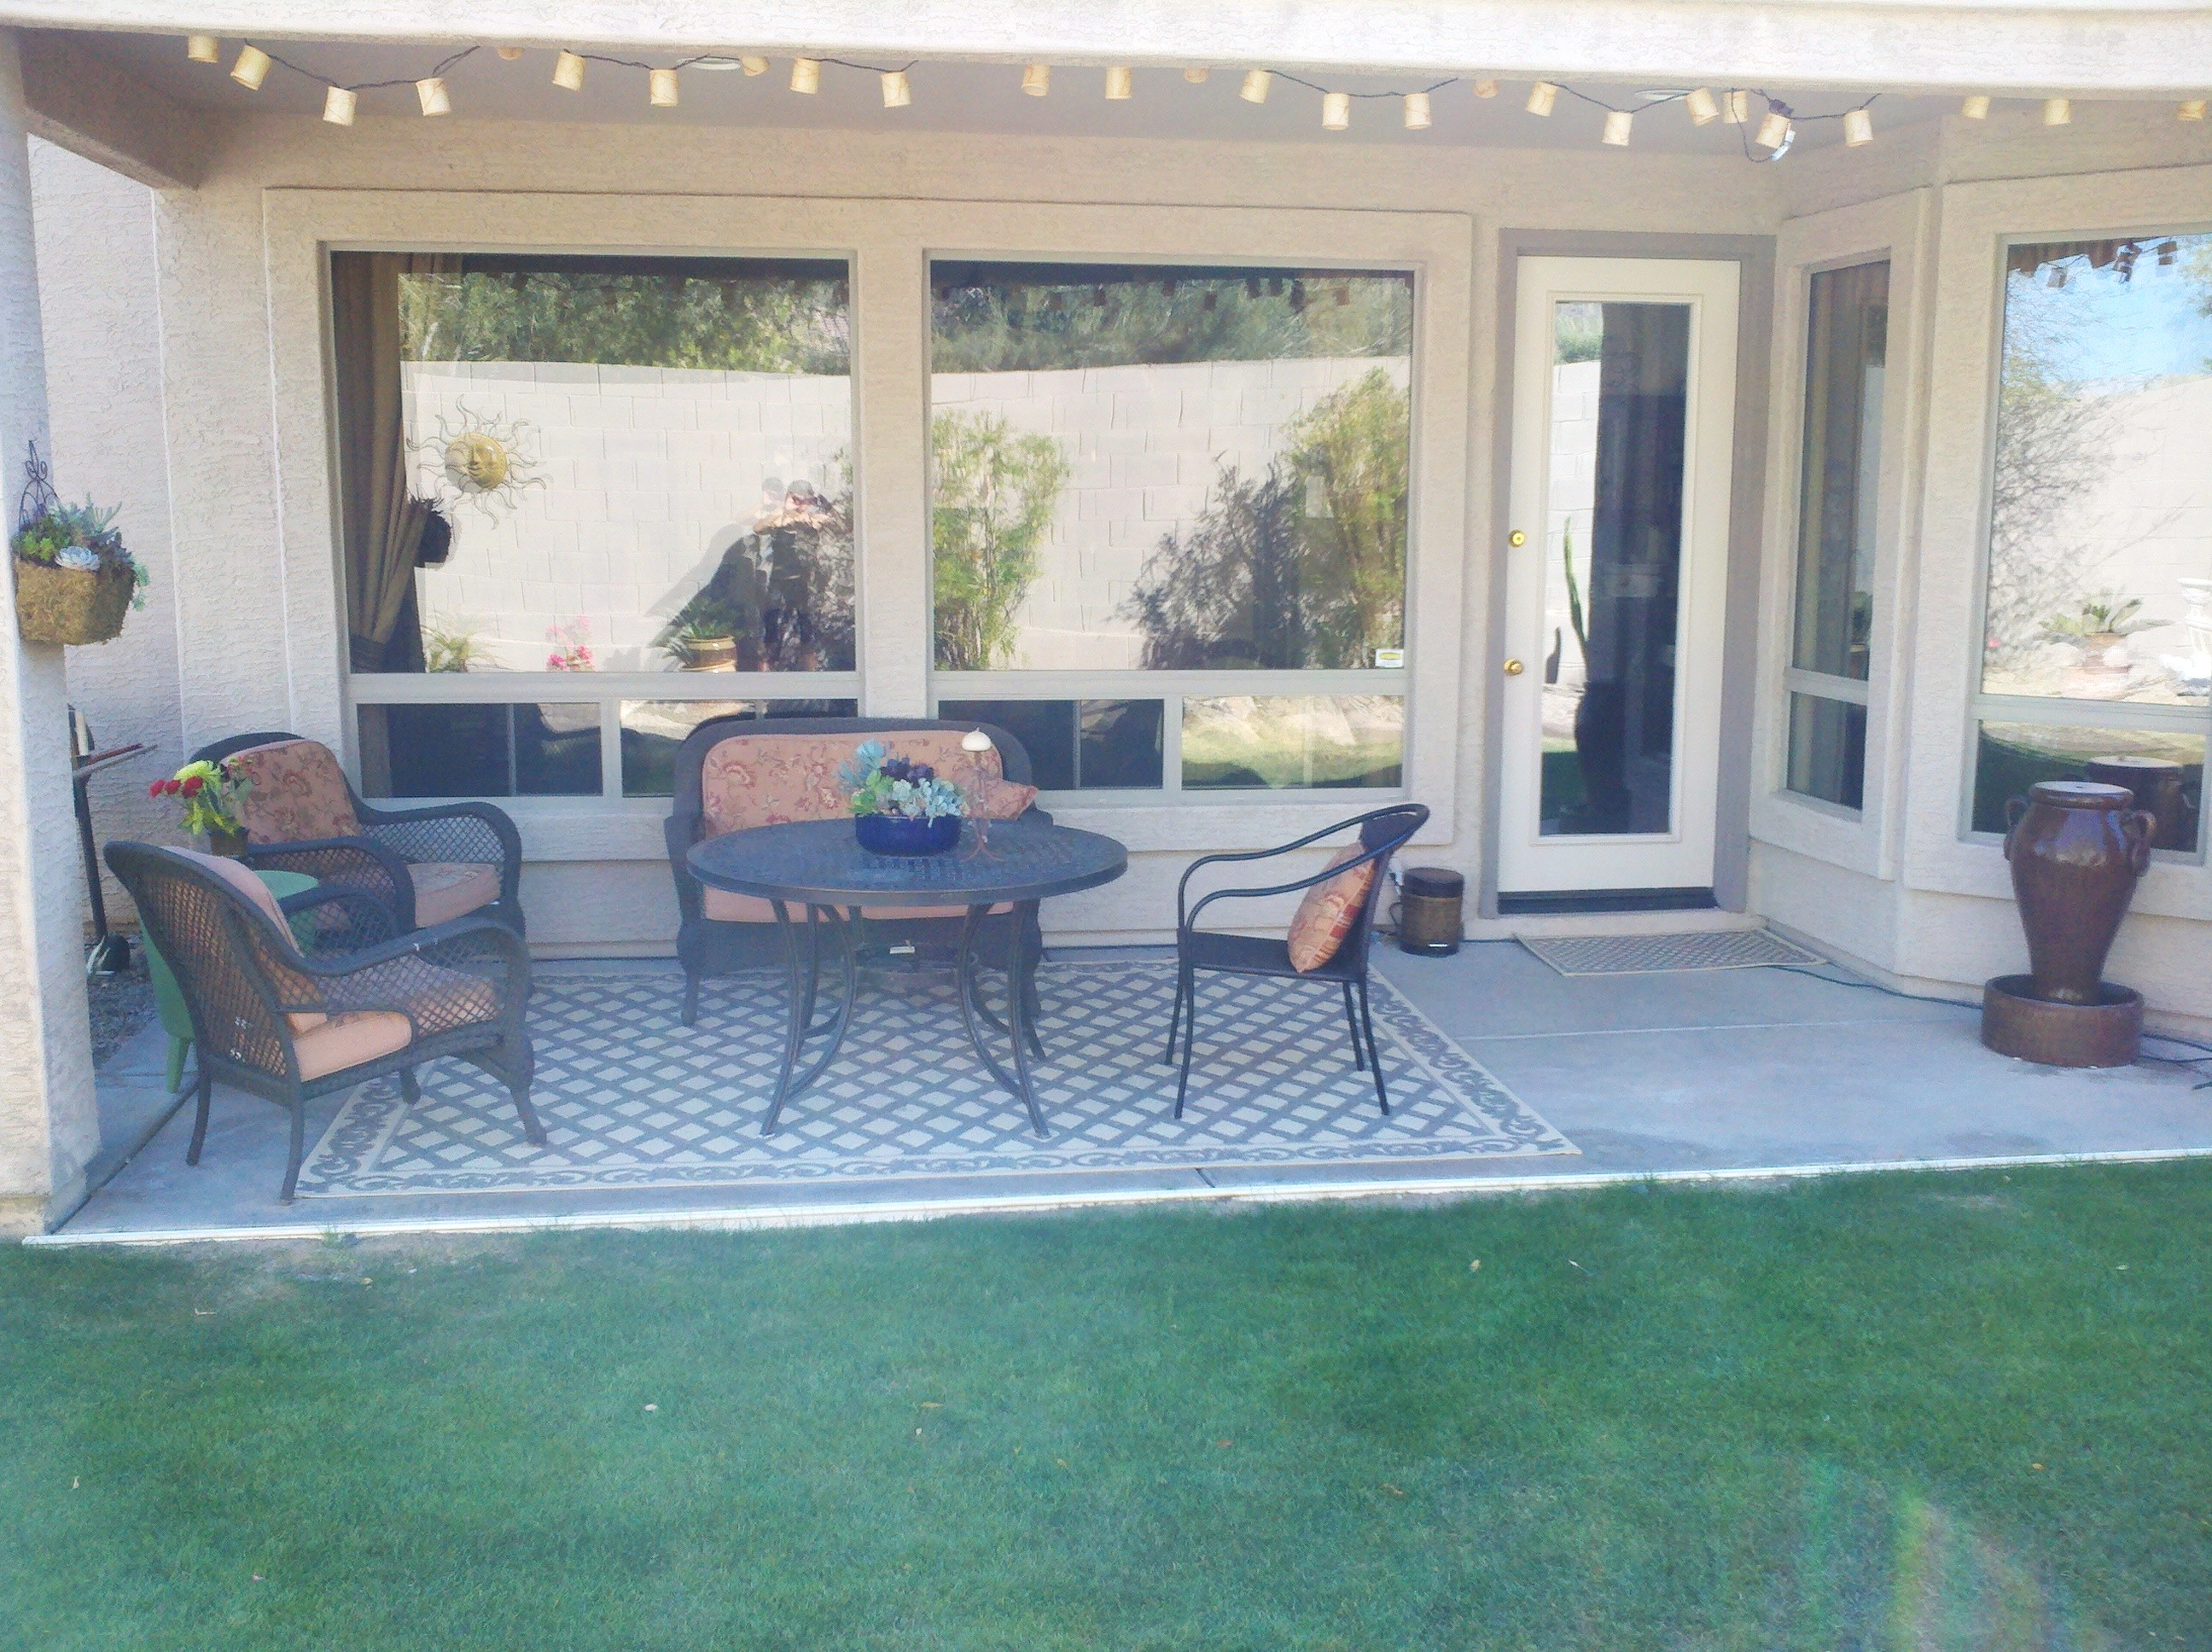 An Easy & Pleasing Patio Makeover - ManagedMoms.com on Outdoor Patio Makeover id=77546